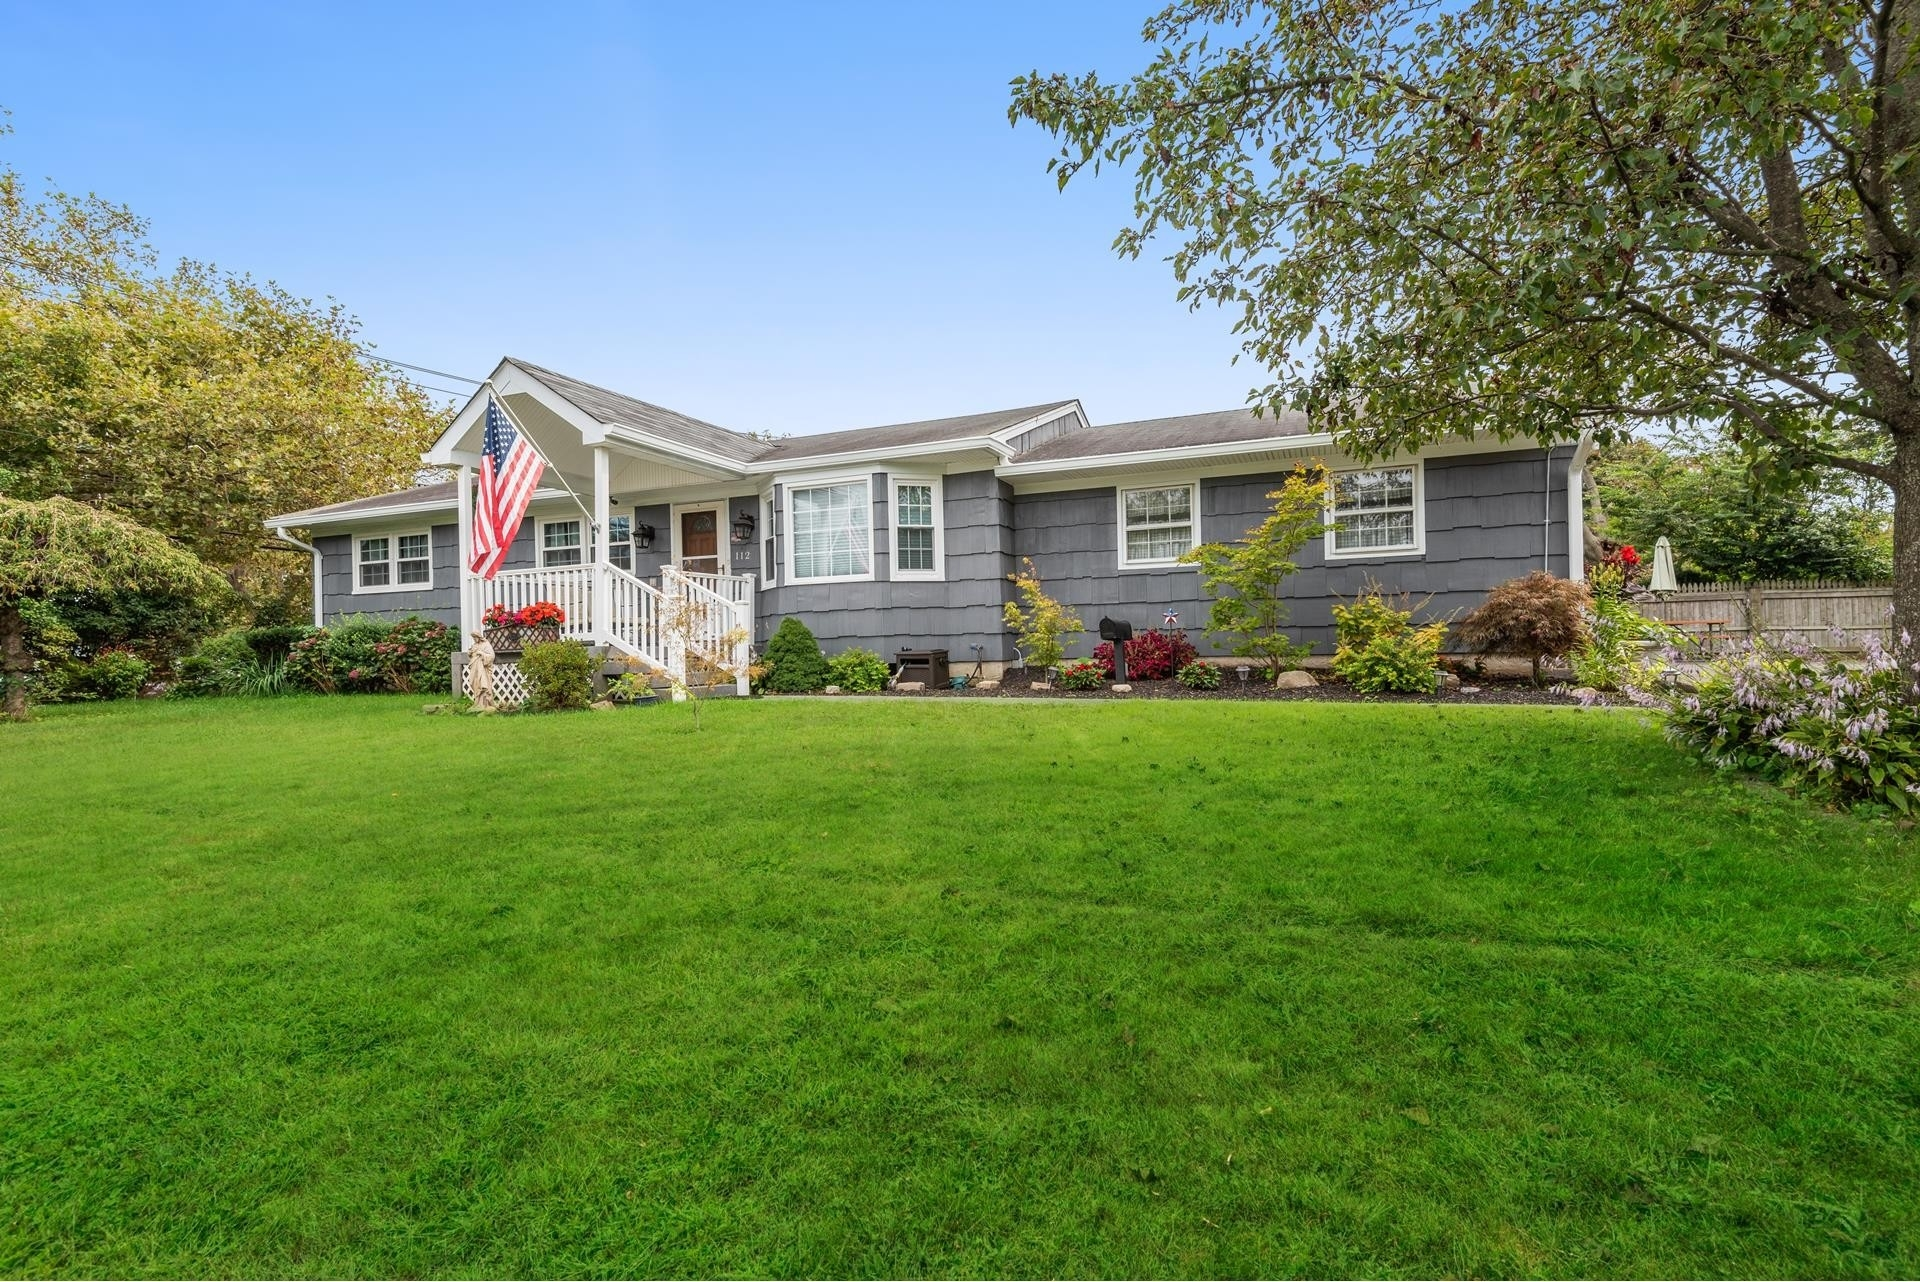 Single Family Home for Sale at West Islip, NY 11795